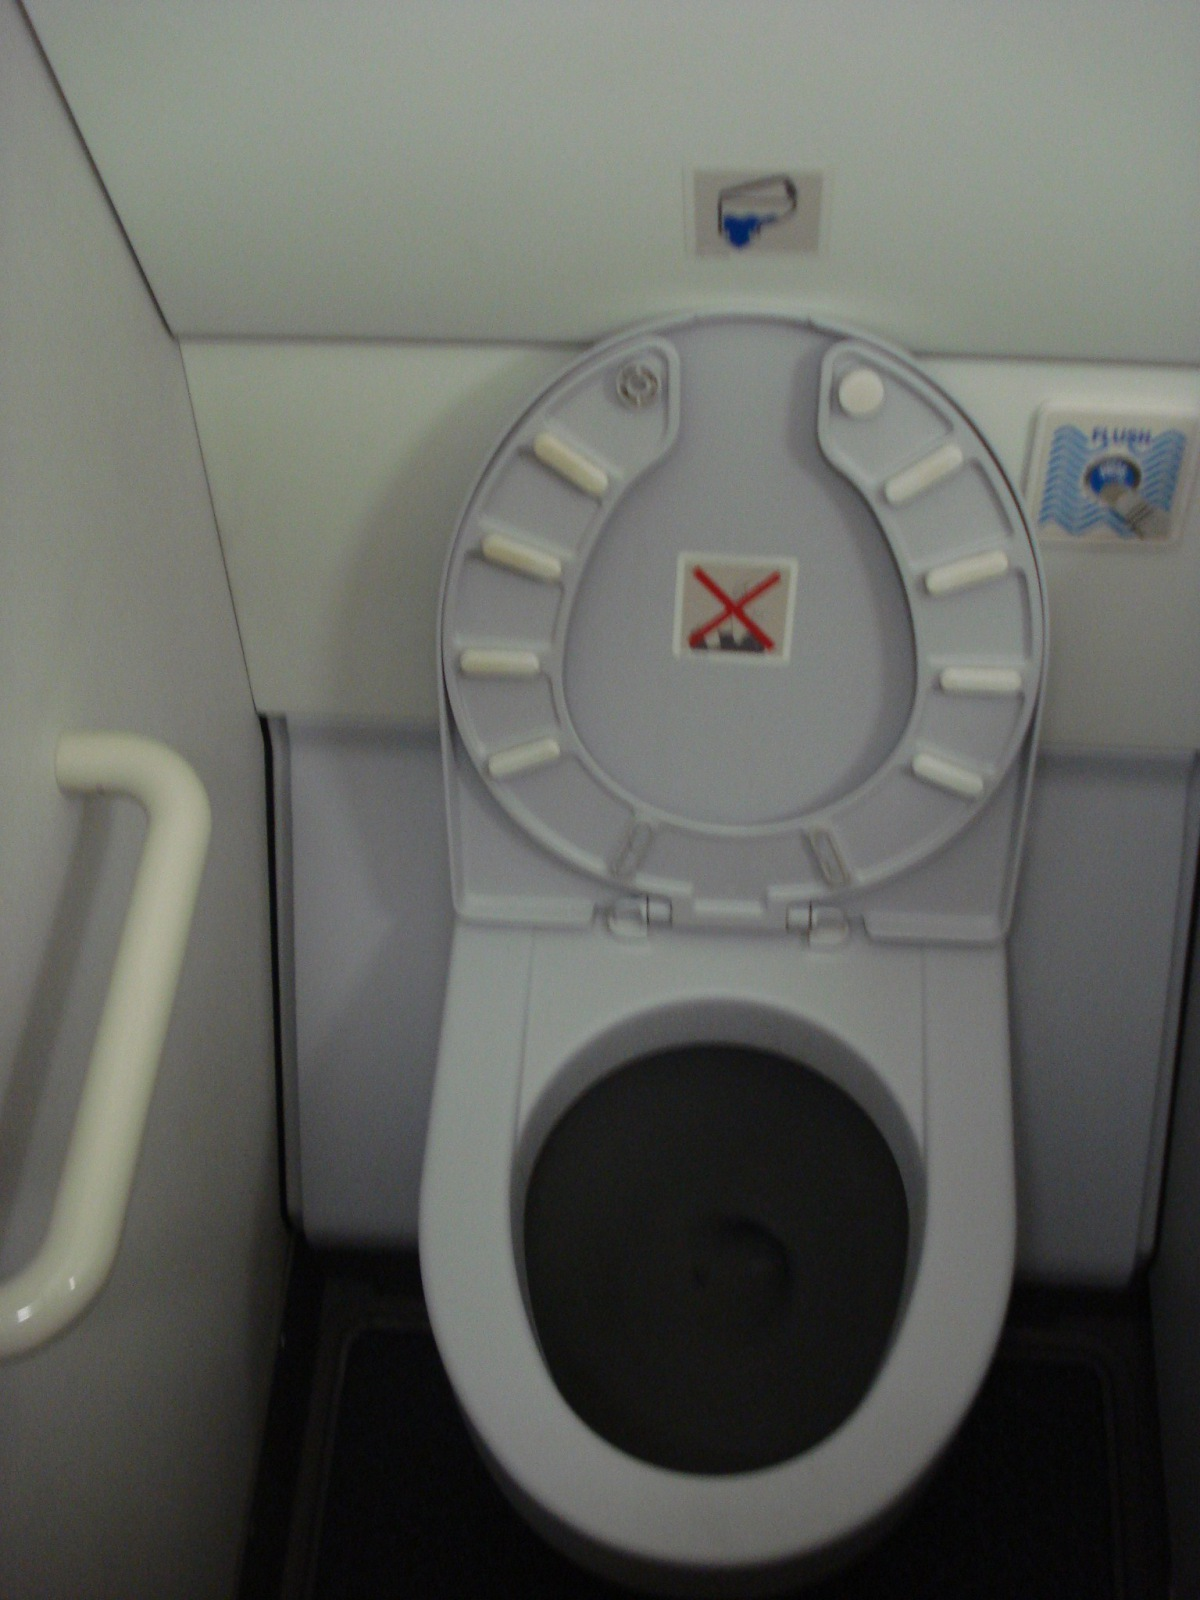 Restroom in an Airbus A319 of Finnair